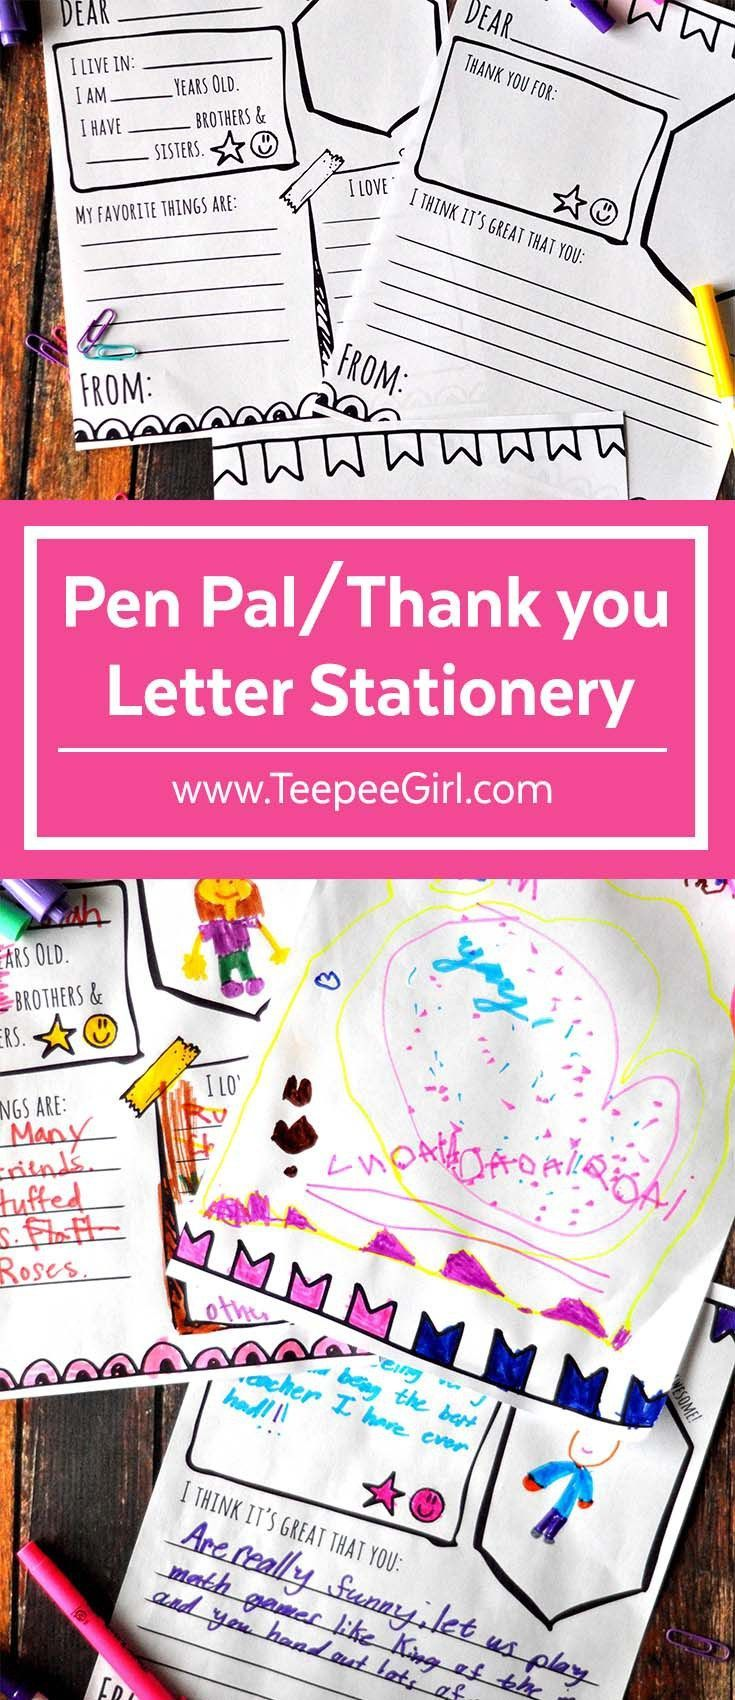 i need a penpal to write to